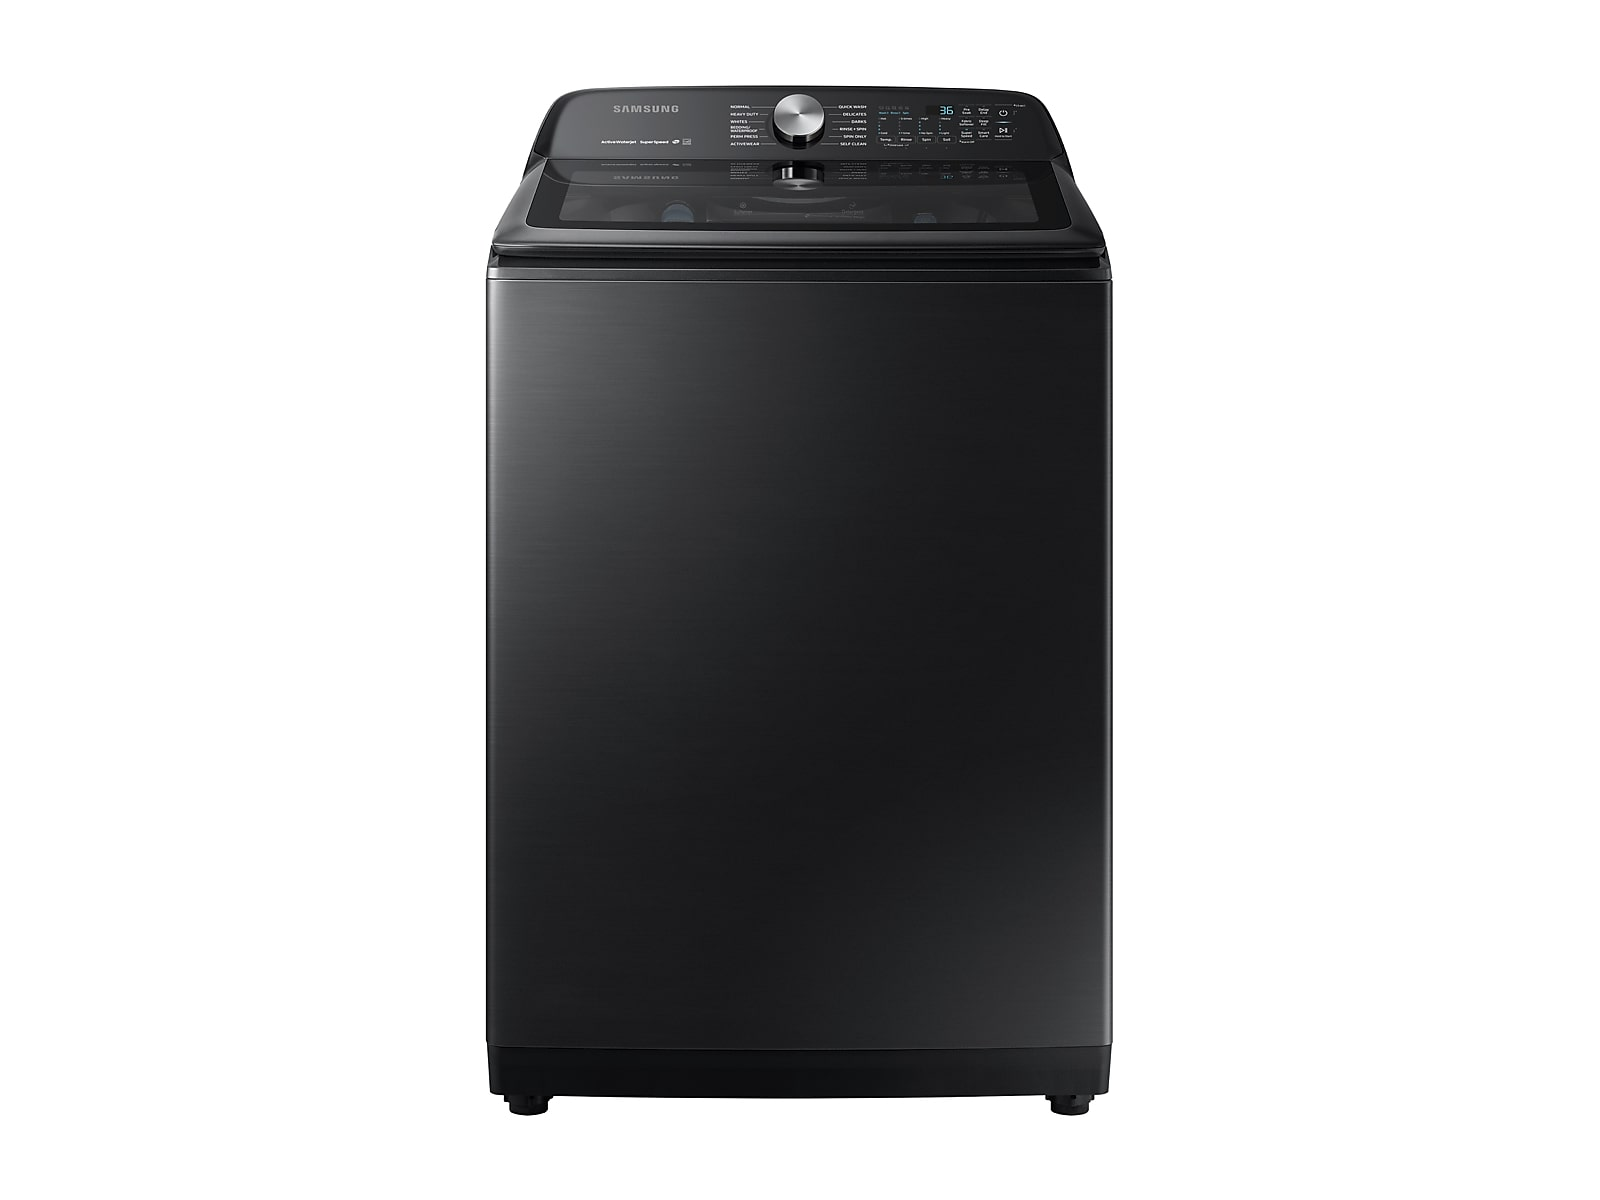 Samsung 5.0 cu. ft. Top Load Washer with Super Speed in Black Stainless Steel(WA50R5400AV/US)